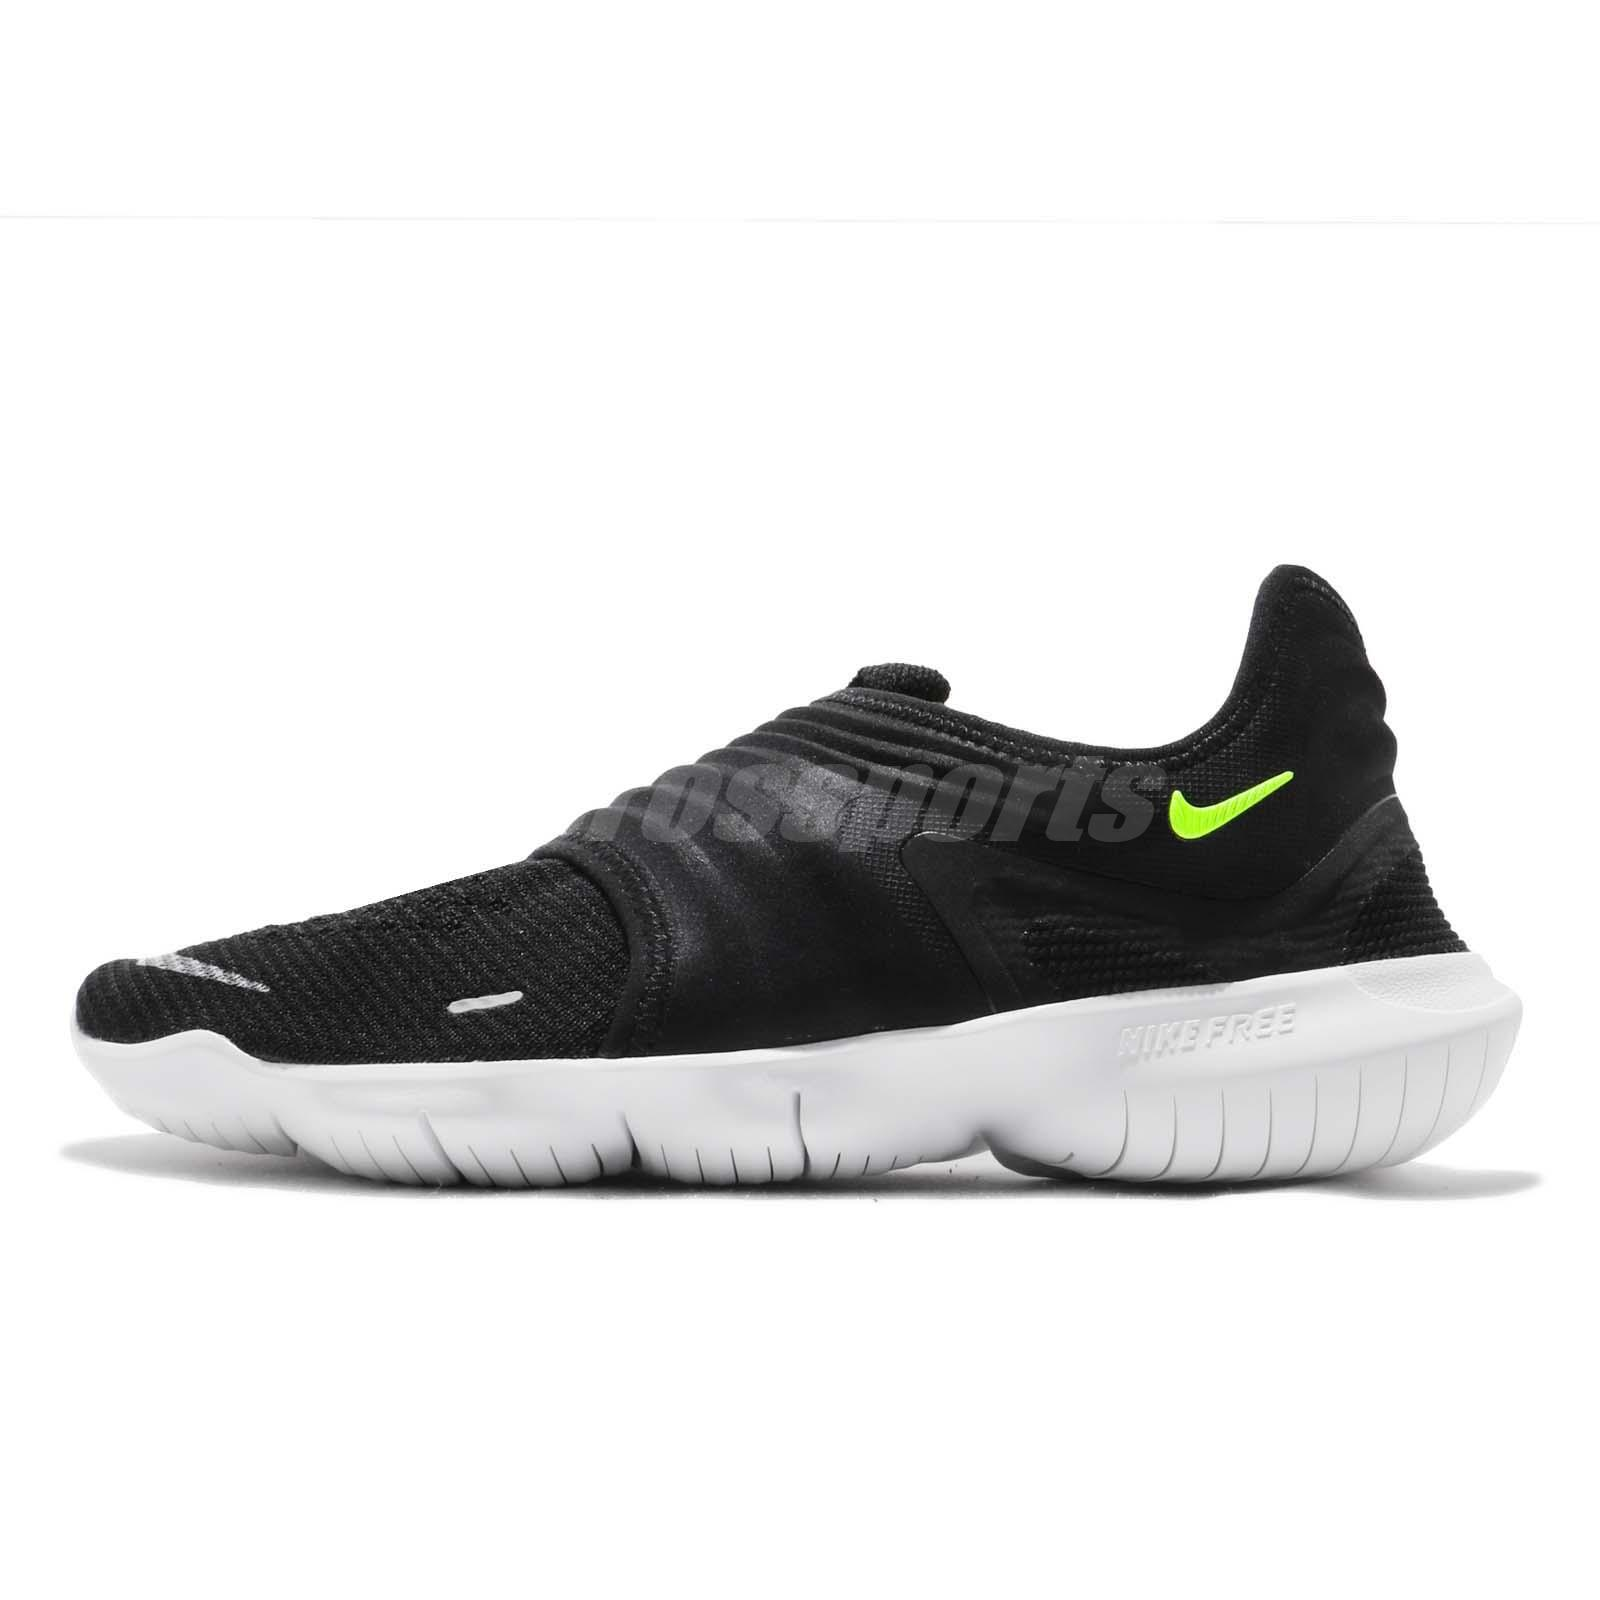 200c745dcff0d Details about Nike Free RN Flyknit 3.0 Black Volt White Men Running Shoes  Sneakers AQ5707-001